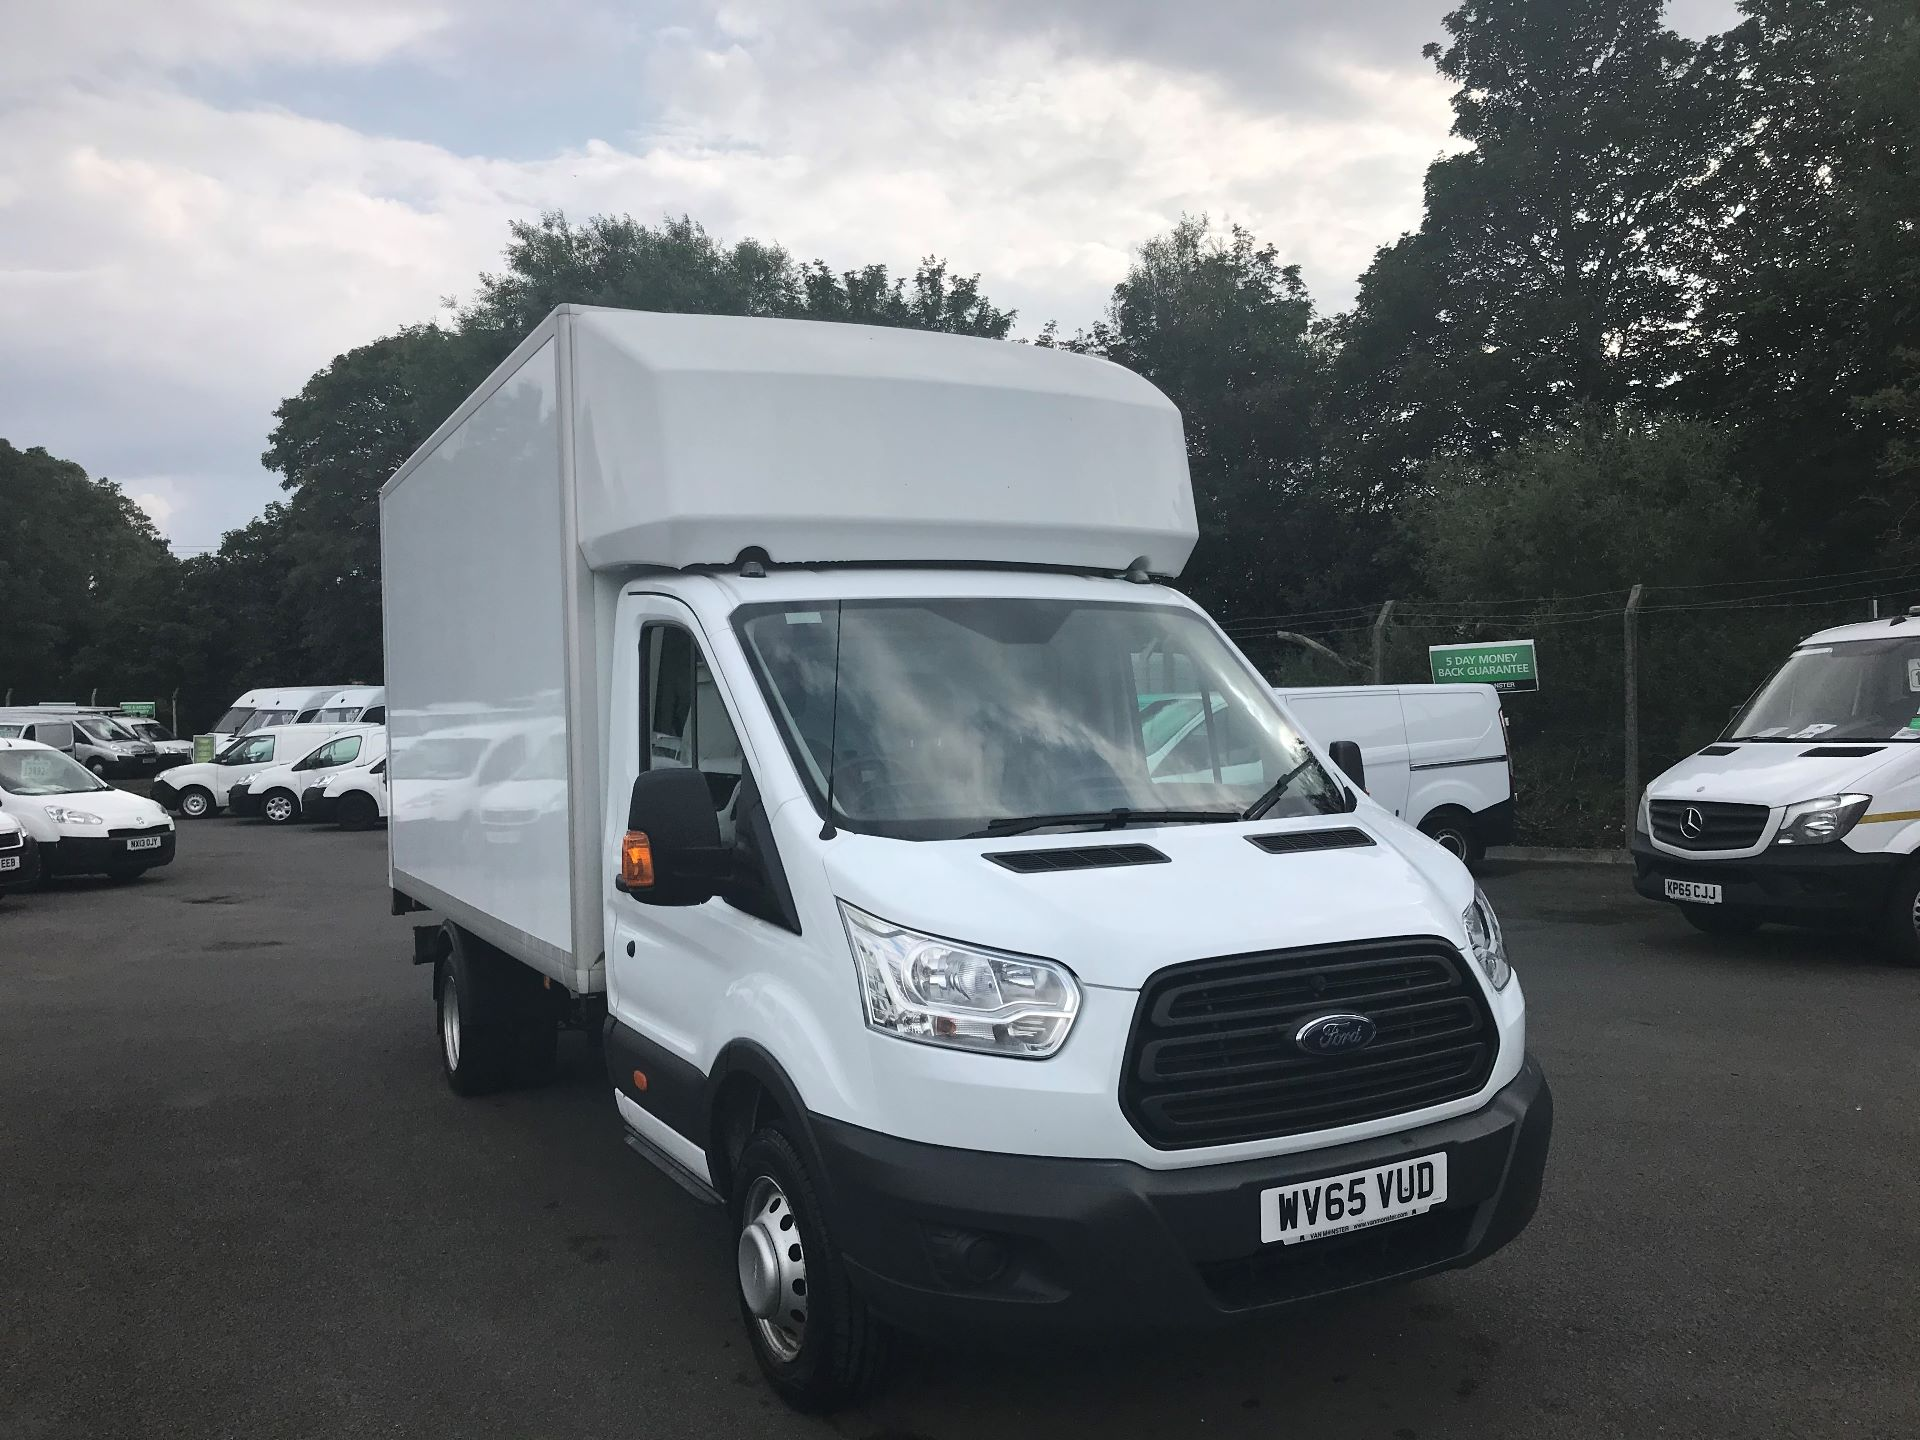 2015 Ford Transit 350 L4 LUTON 125PS EURO 5 (WV65VUD)